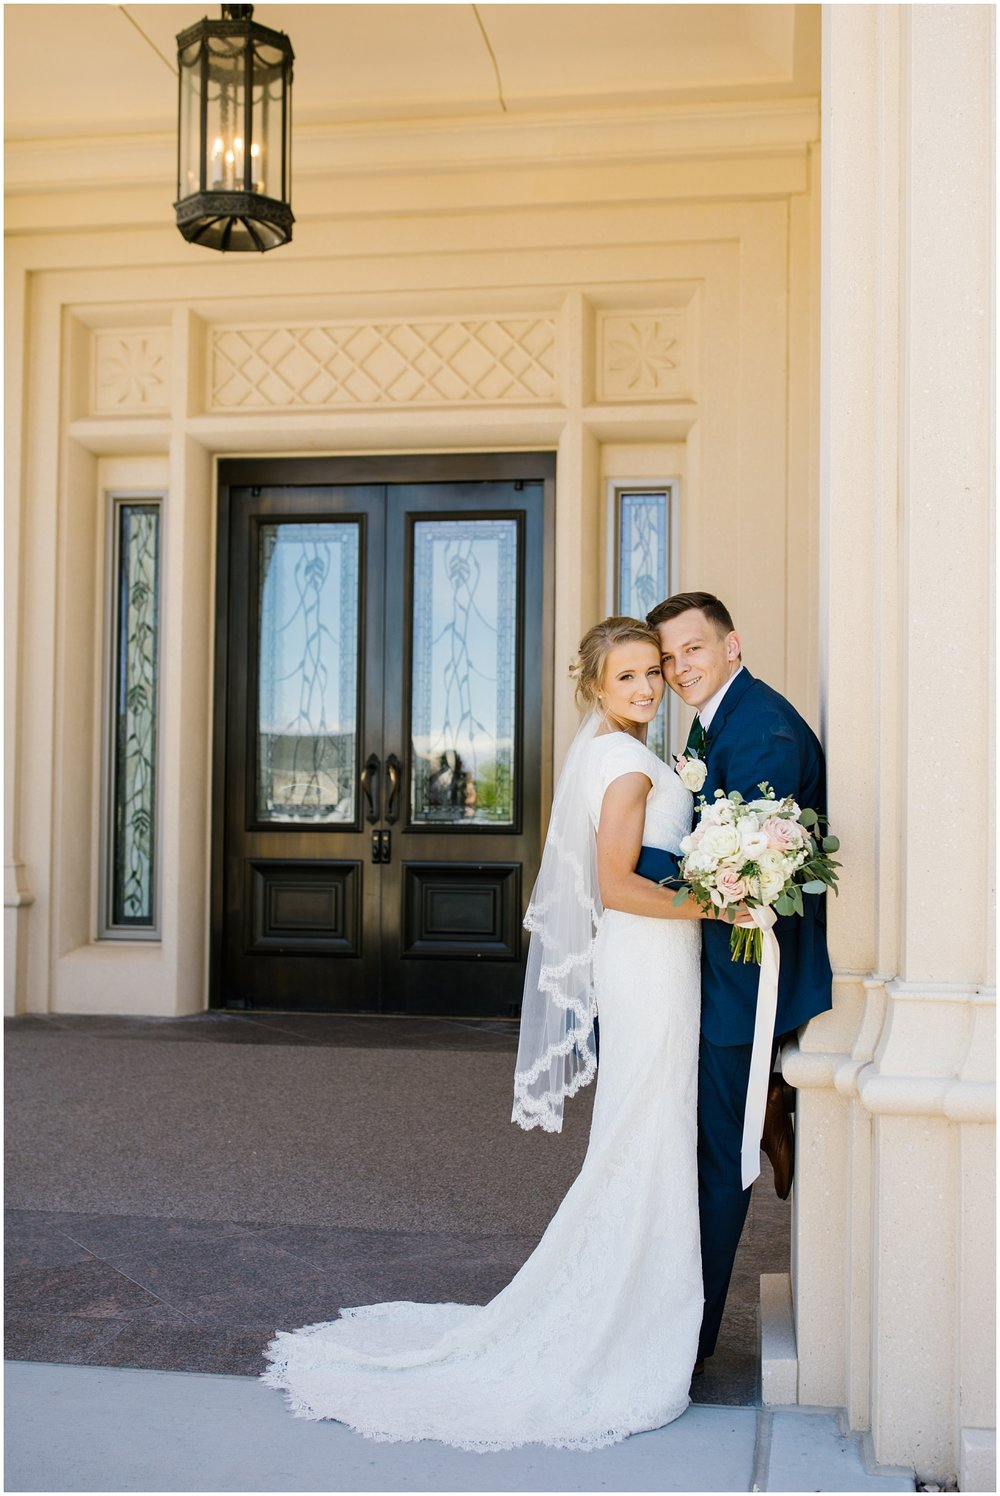 TA-Wedding-149_Lizzie-B-Imagery-Utah-Wedding-Photographer-Park-City-Salt-Lake-City-Thanksgiving-Point-Ashton-Gardens-Lehi-Utah.jpg